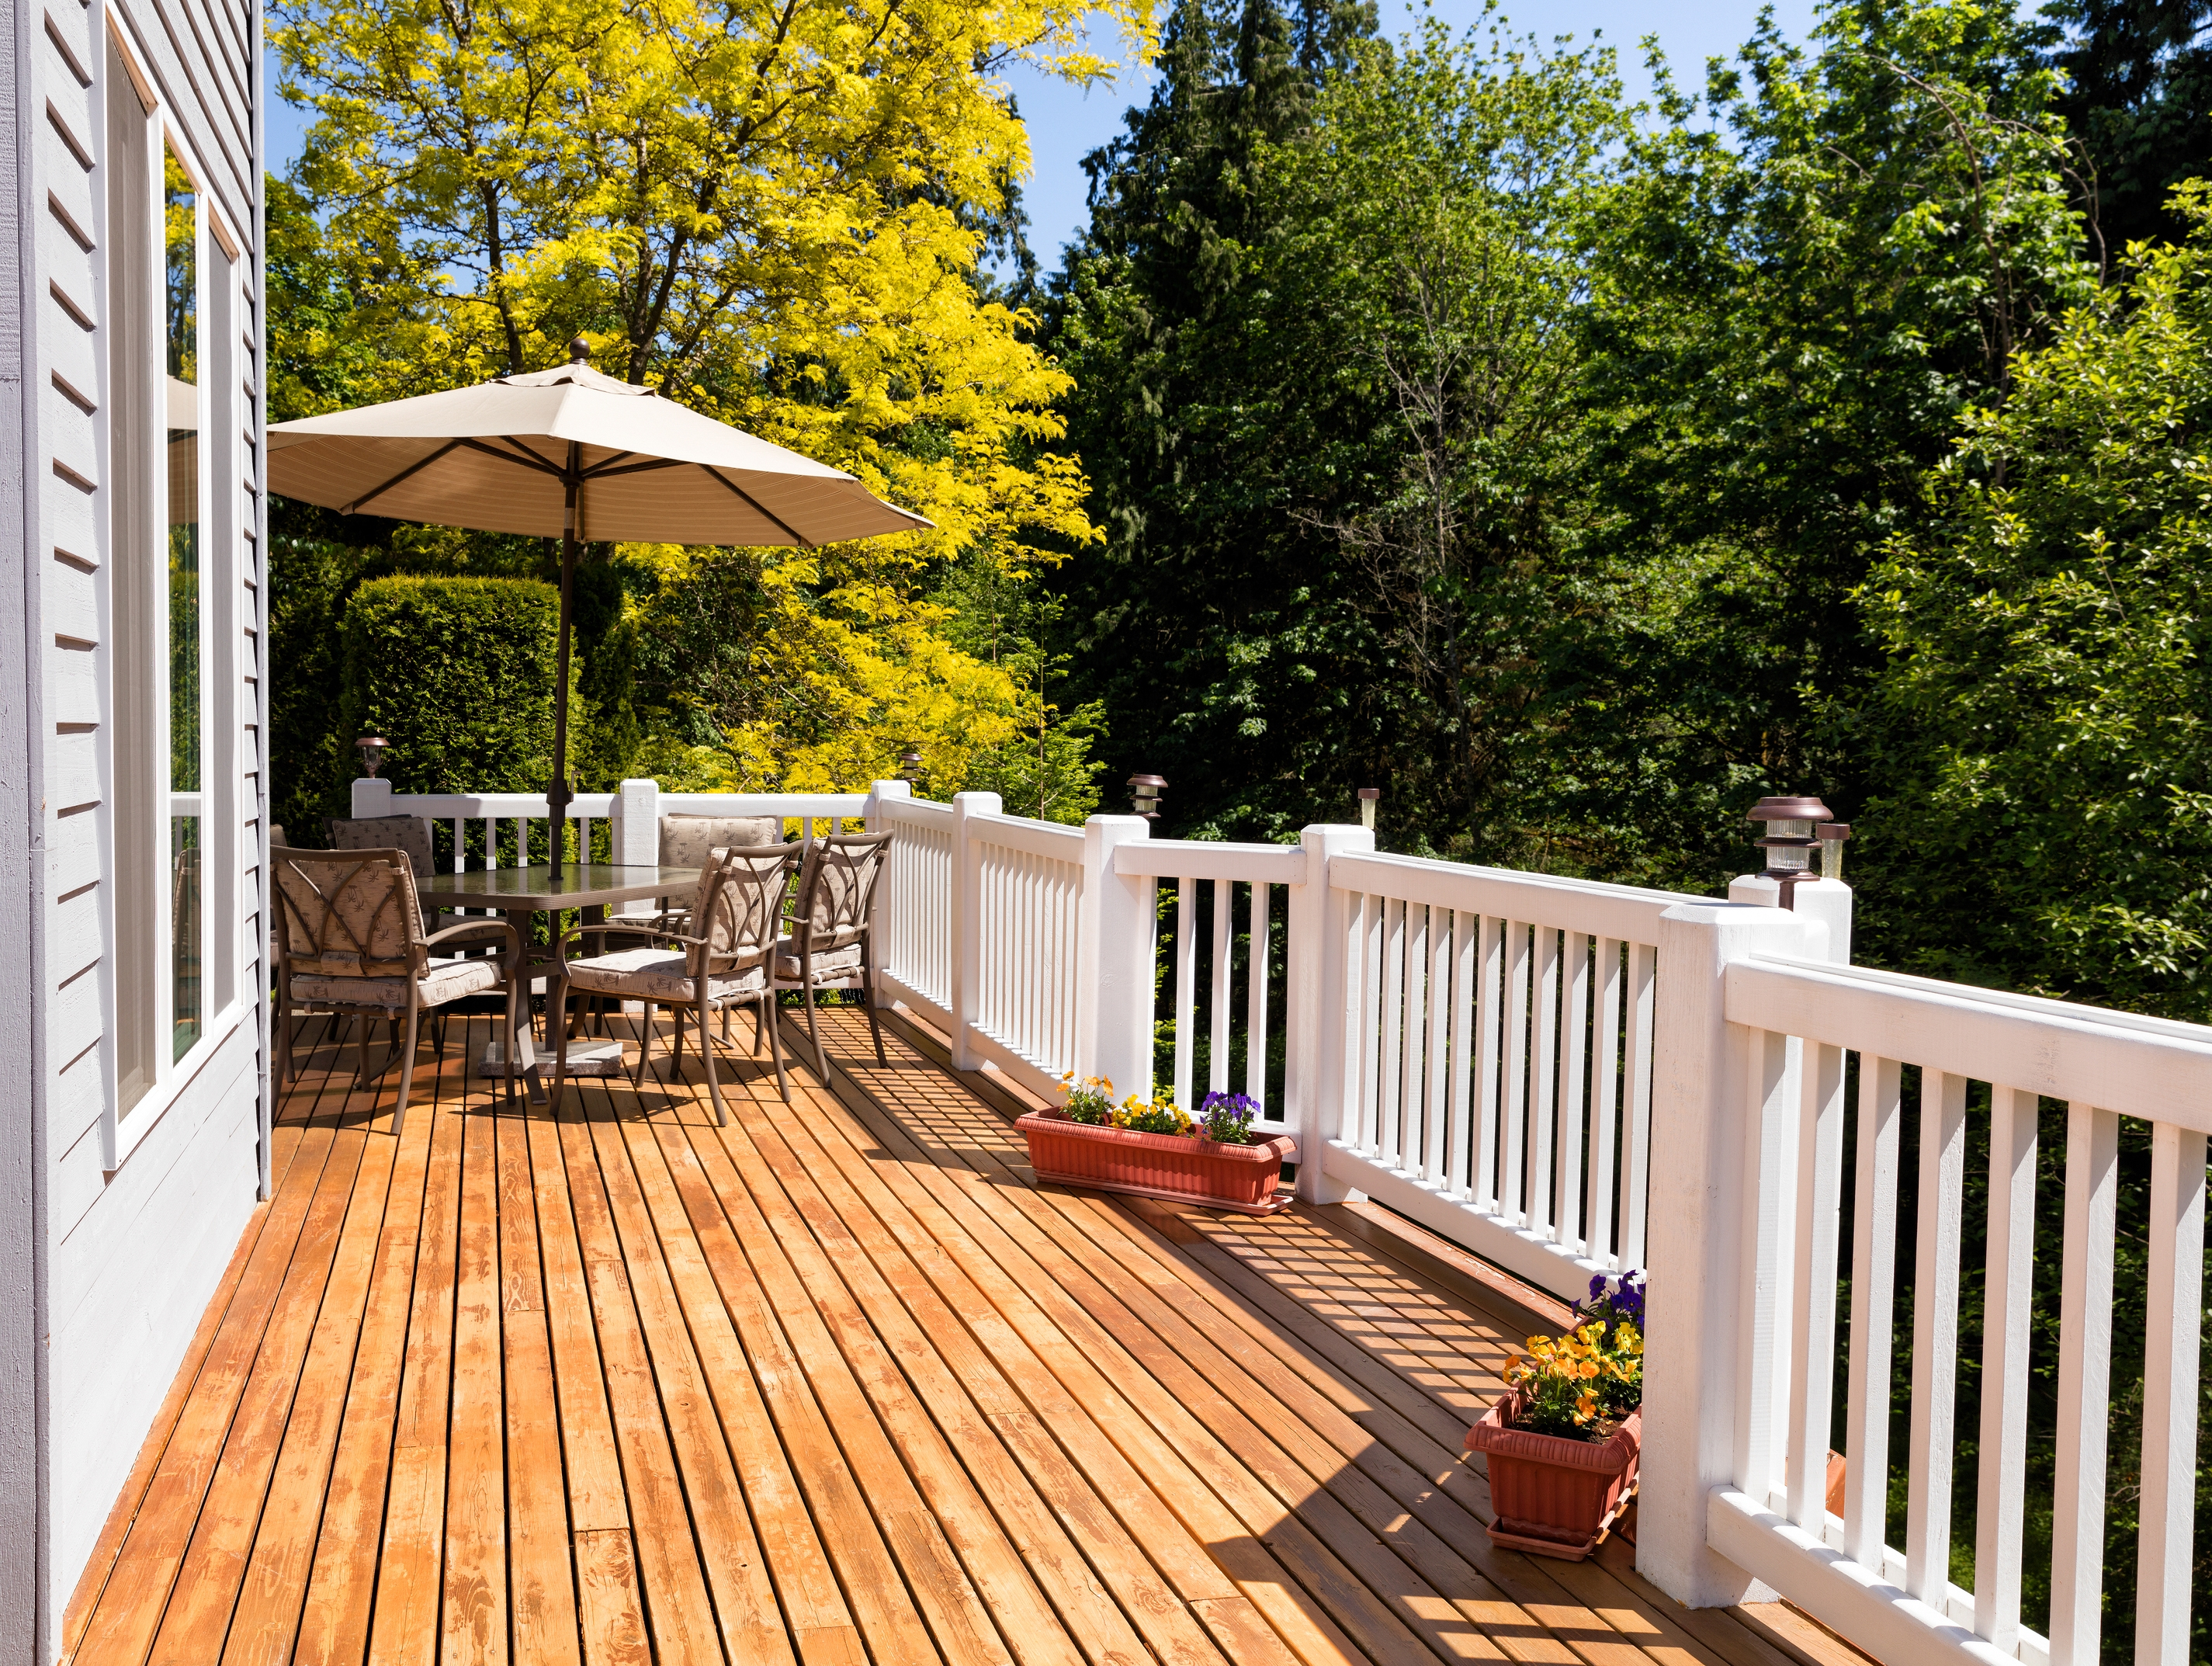 home outdoor cedar deck with furniture and open umbrella during nice bright day